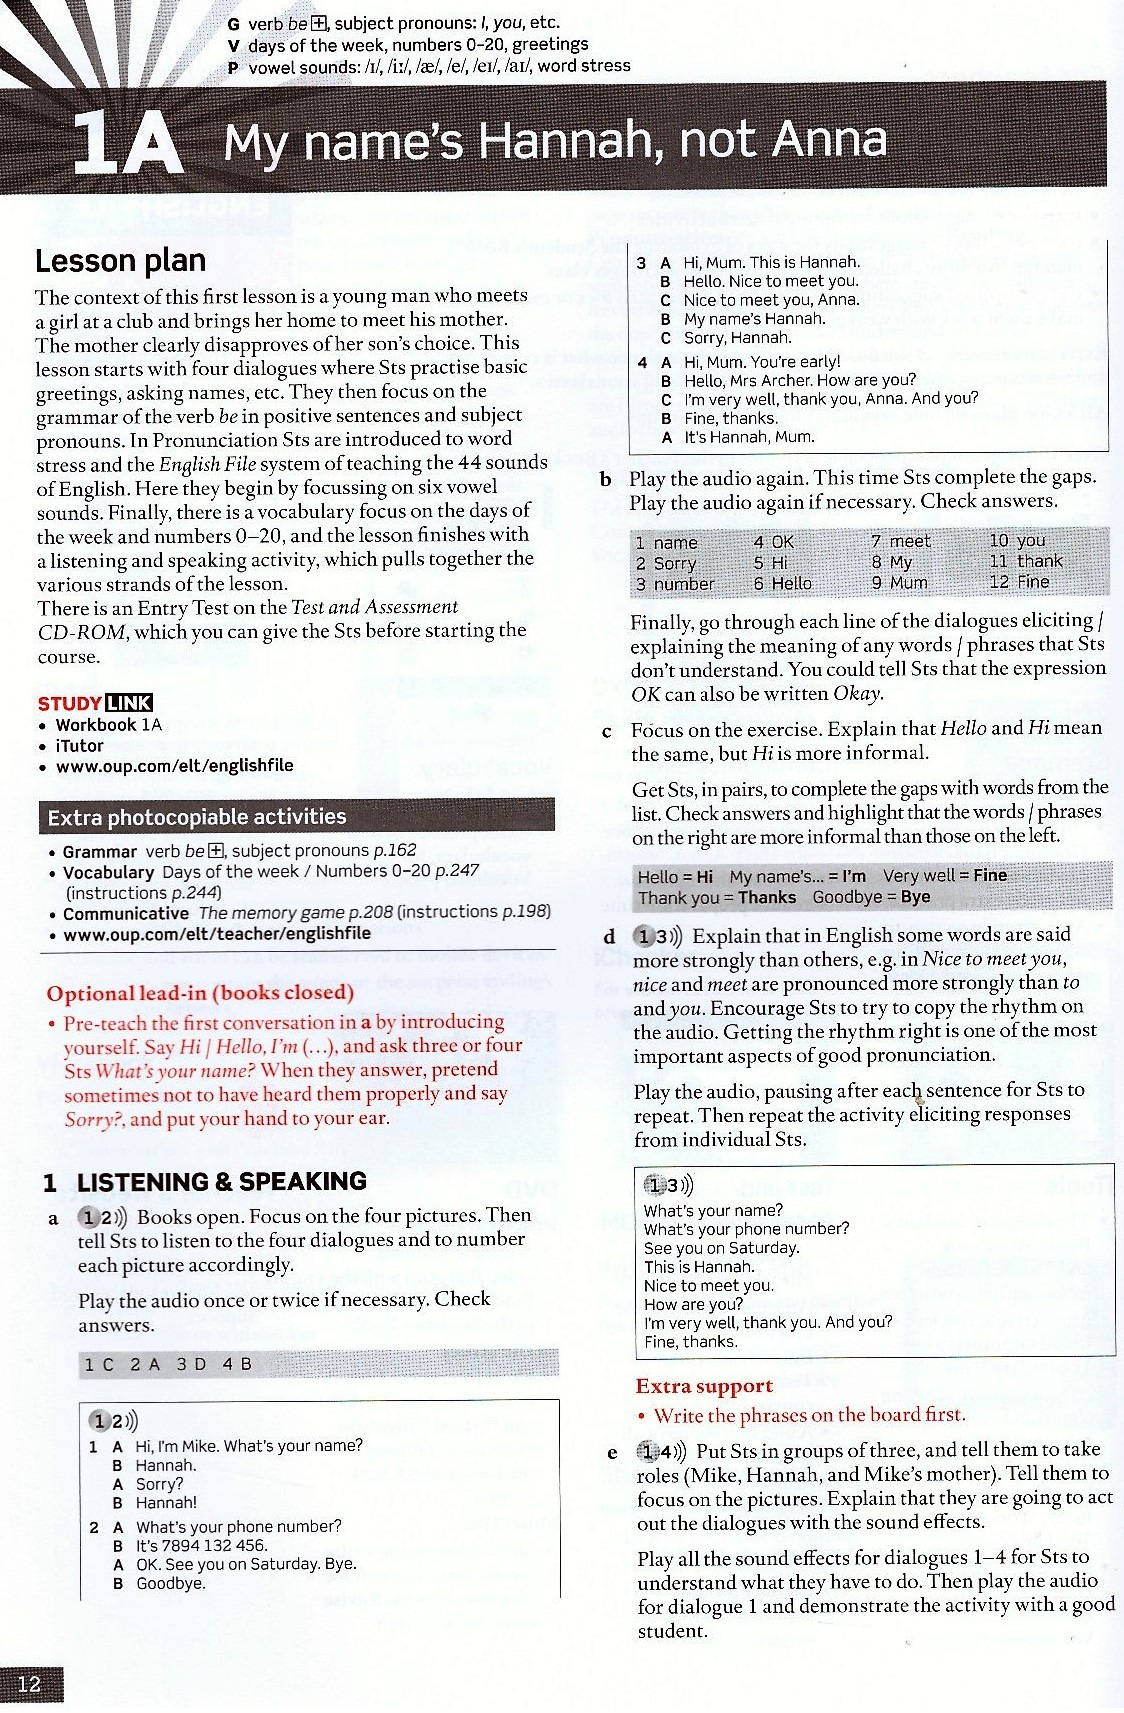 New English File Elementary Student's Book ebook pdf ...